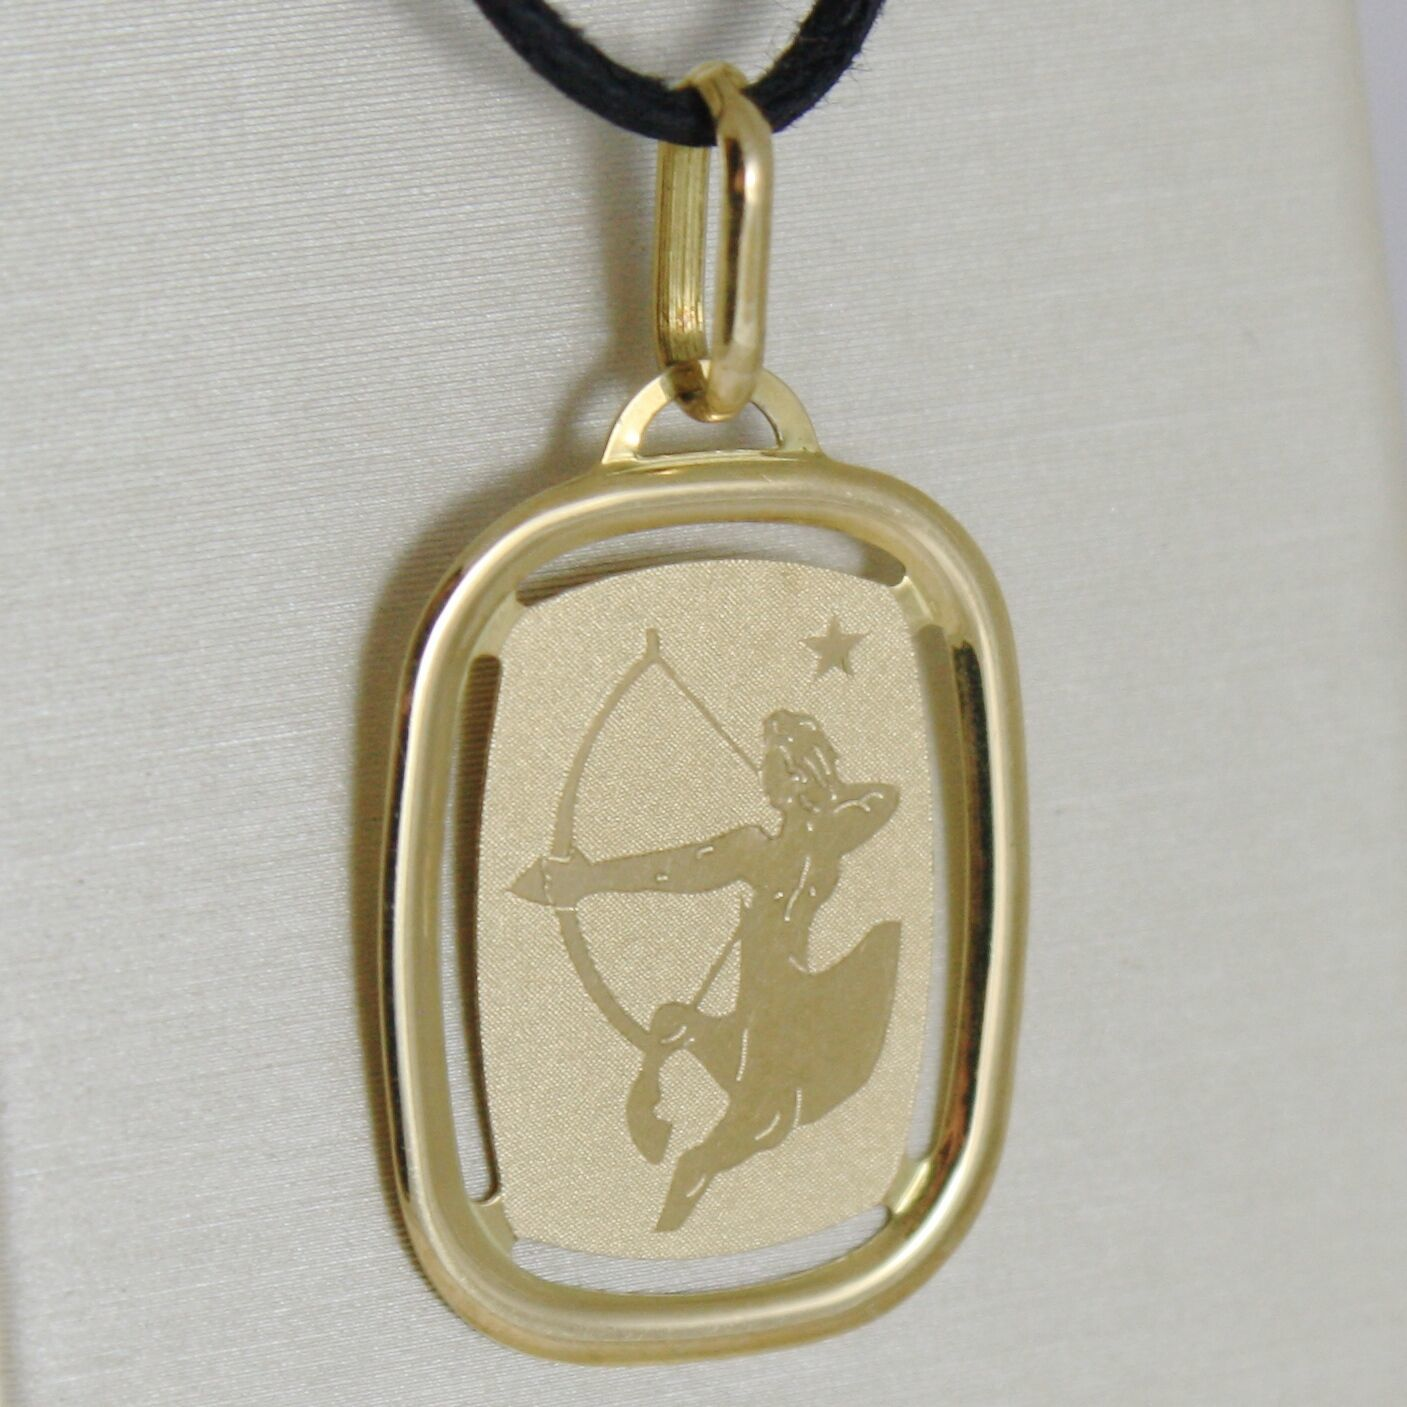 SOLID 18K YELLOW GOLD SAGITTARIUS ZODIAC SIGN MEDAL PENDANT, MADE IN ITALY